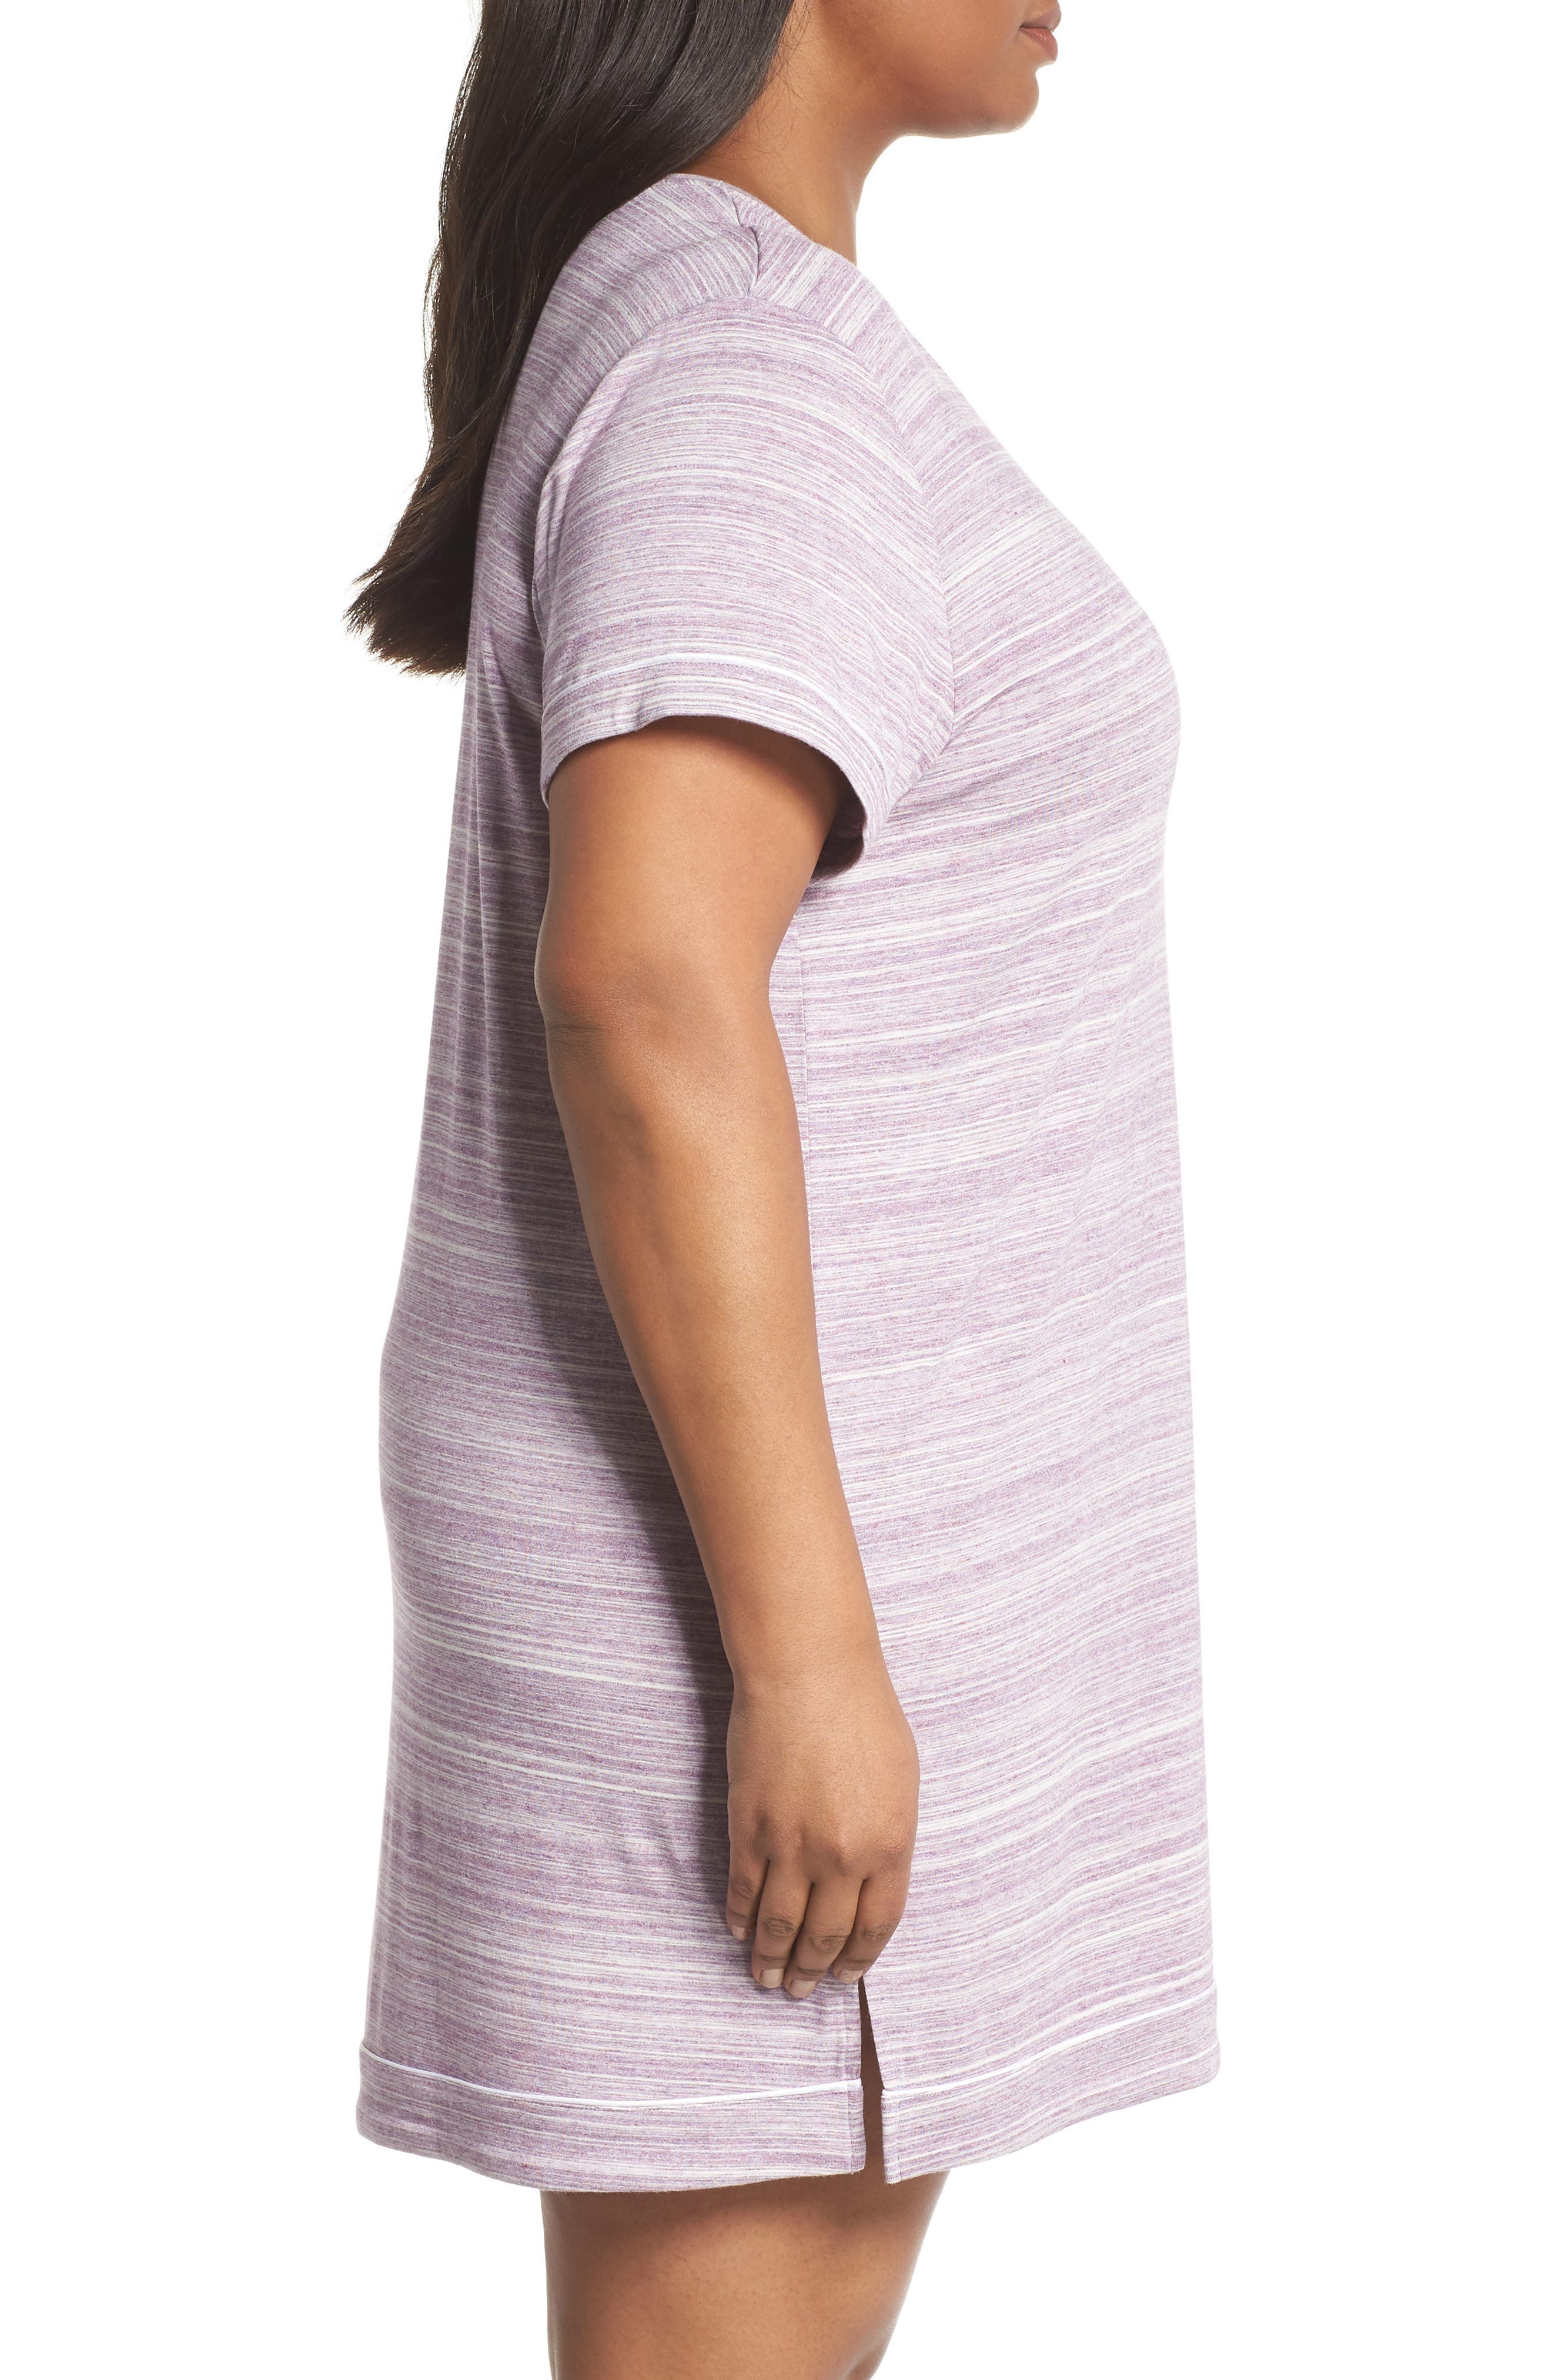 Moonlight V-Neck Nightshirt,                             Alternate thumbnail 3, color,                             Purple Spacedye